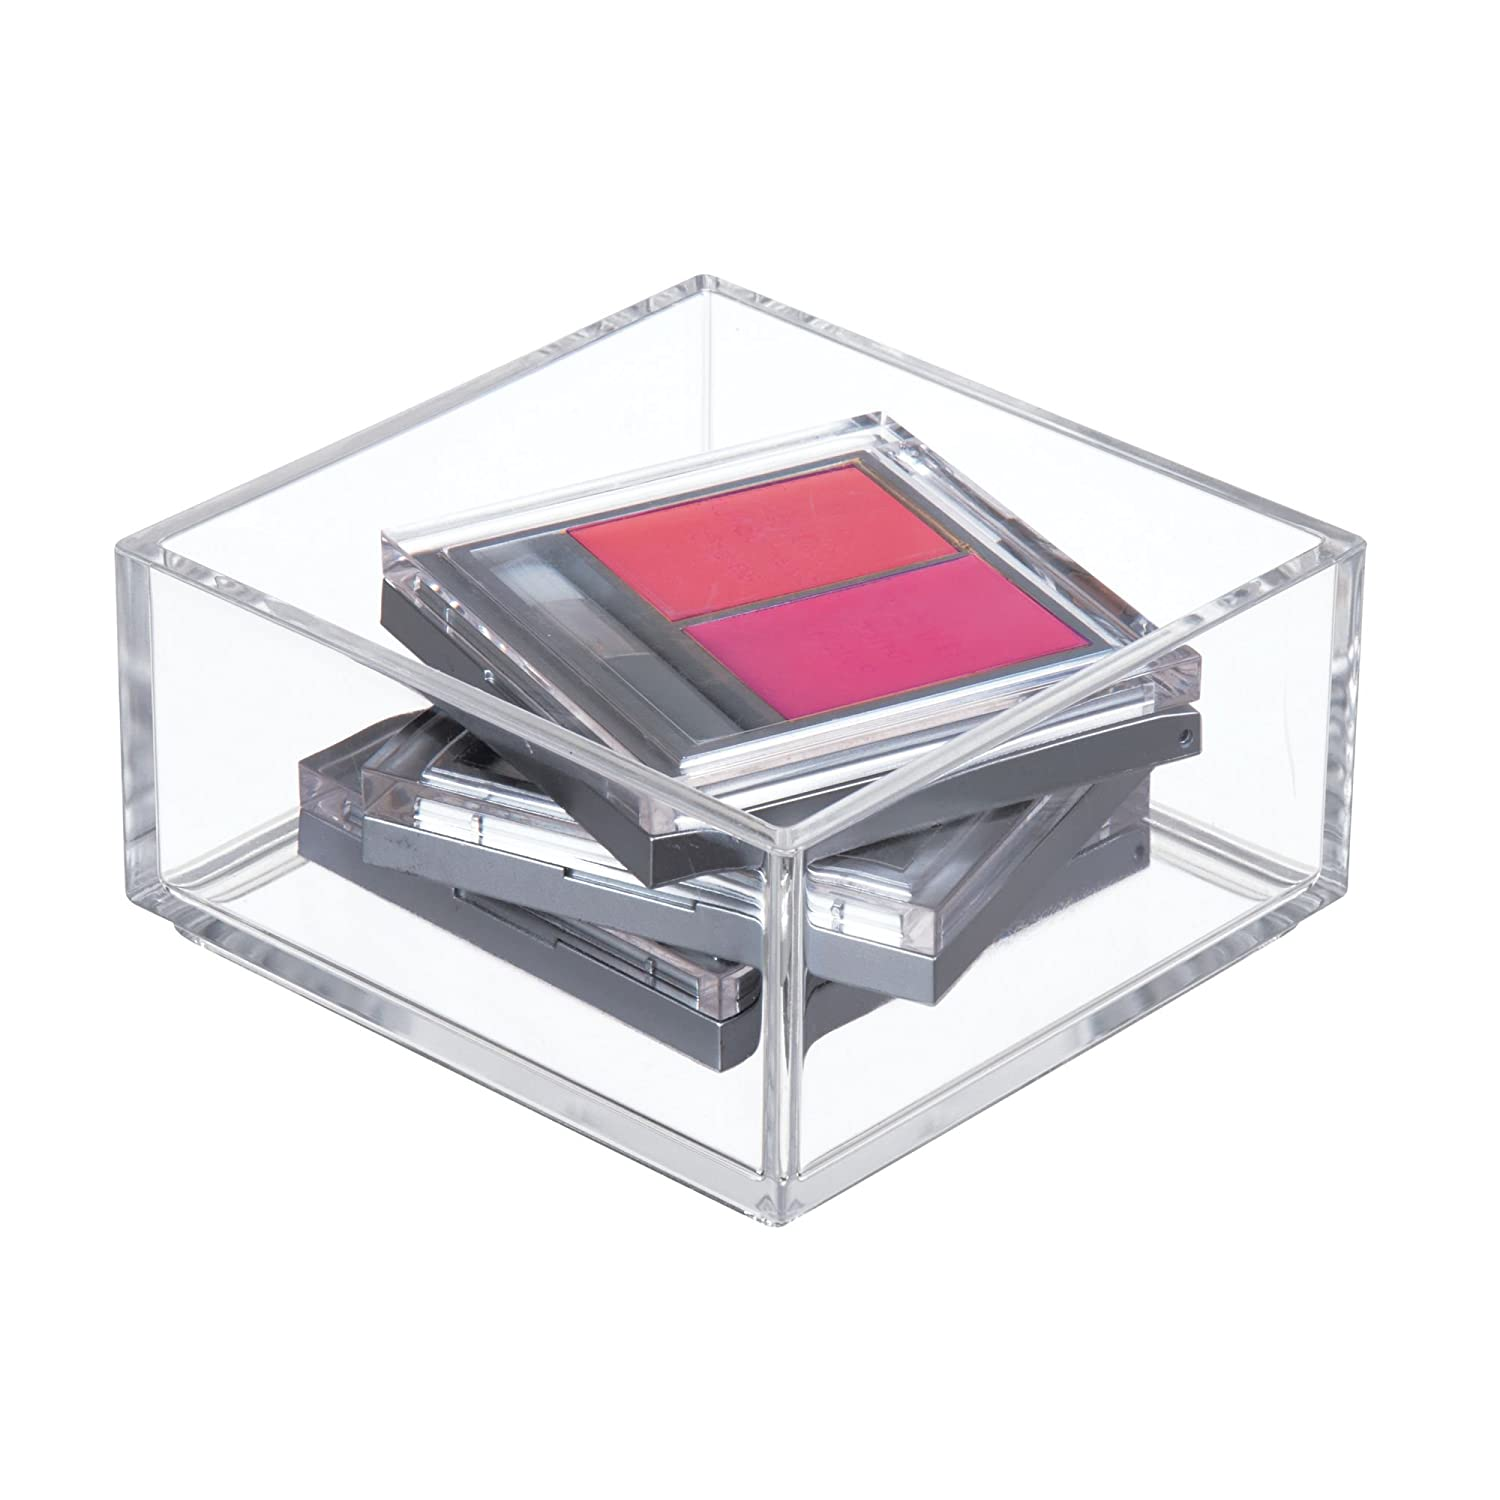 """InterDesign Clarity Plastic Drawer Organizer, Cosmetic Storage Container for Vanity, Bathroom, Kitchen Cabinets 4"""" x 4"""" x 2"""" Clear"""